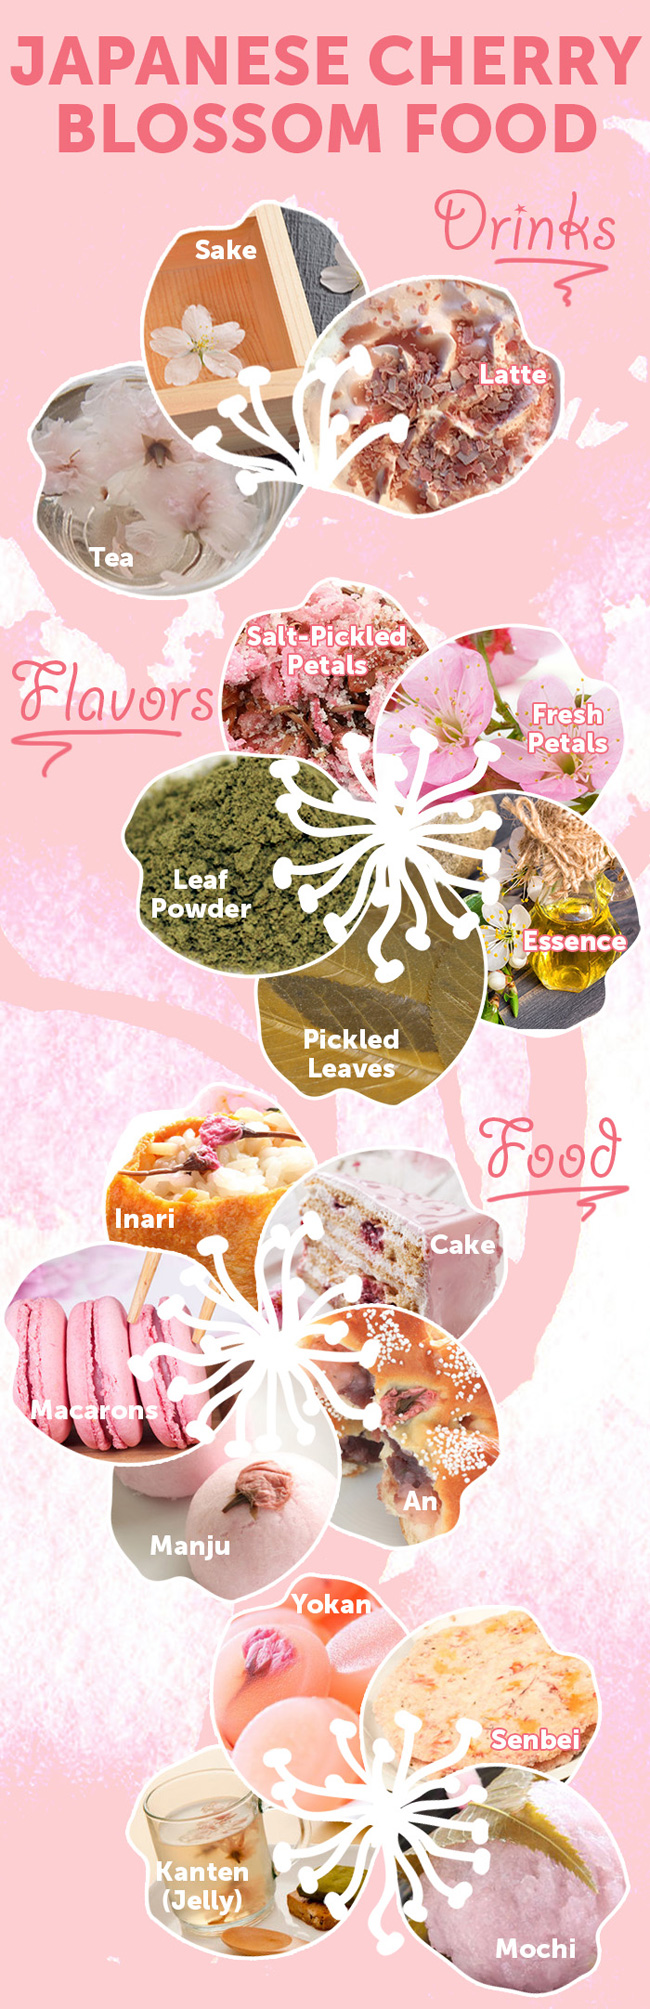 food sakura blossom cherry drinks drink infographic celebrate season japan mochi types